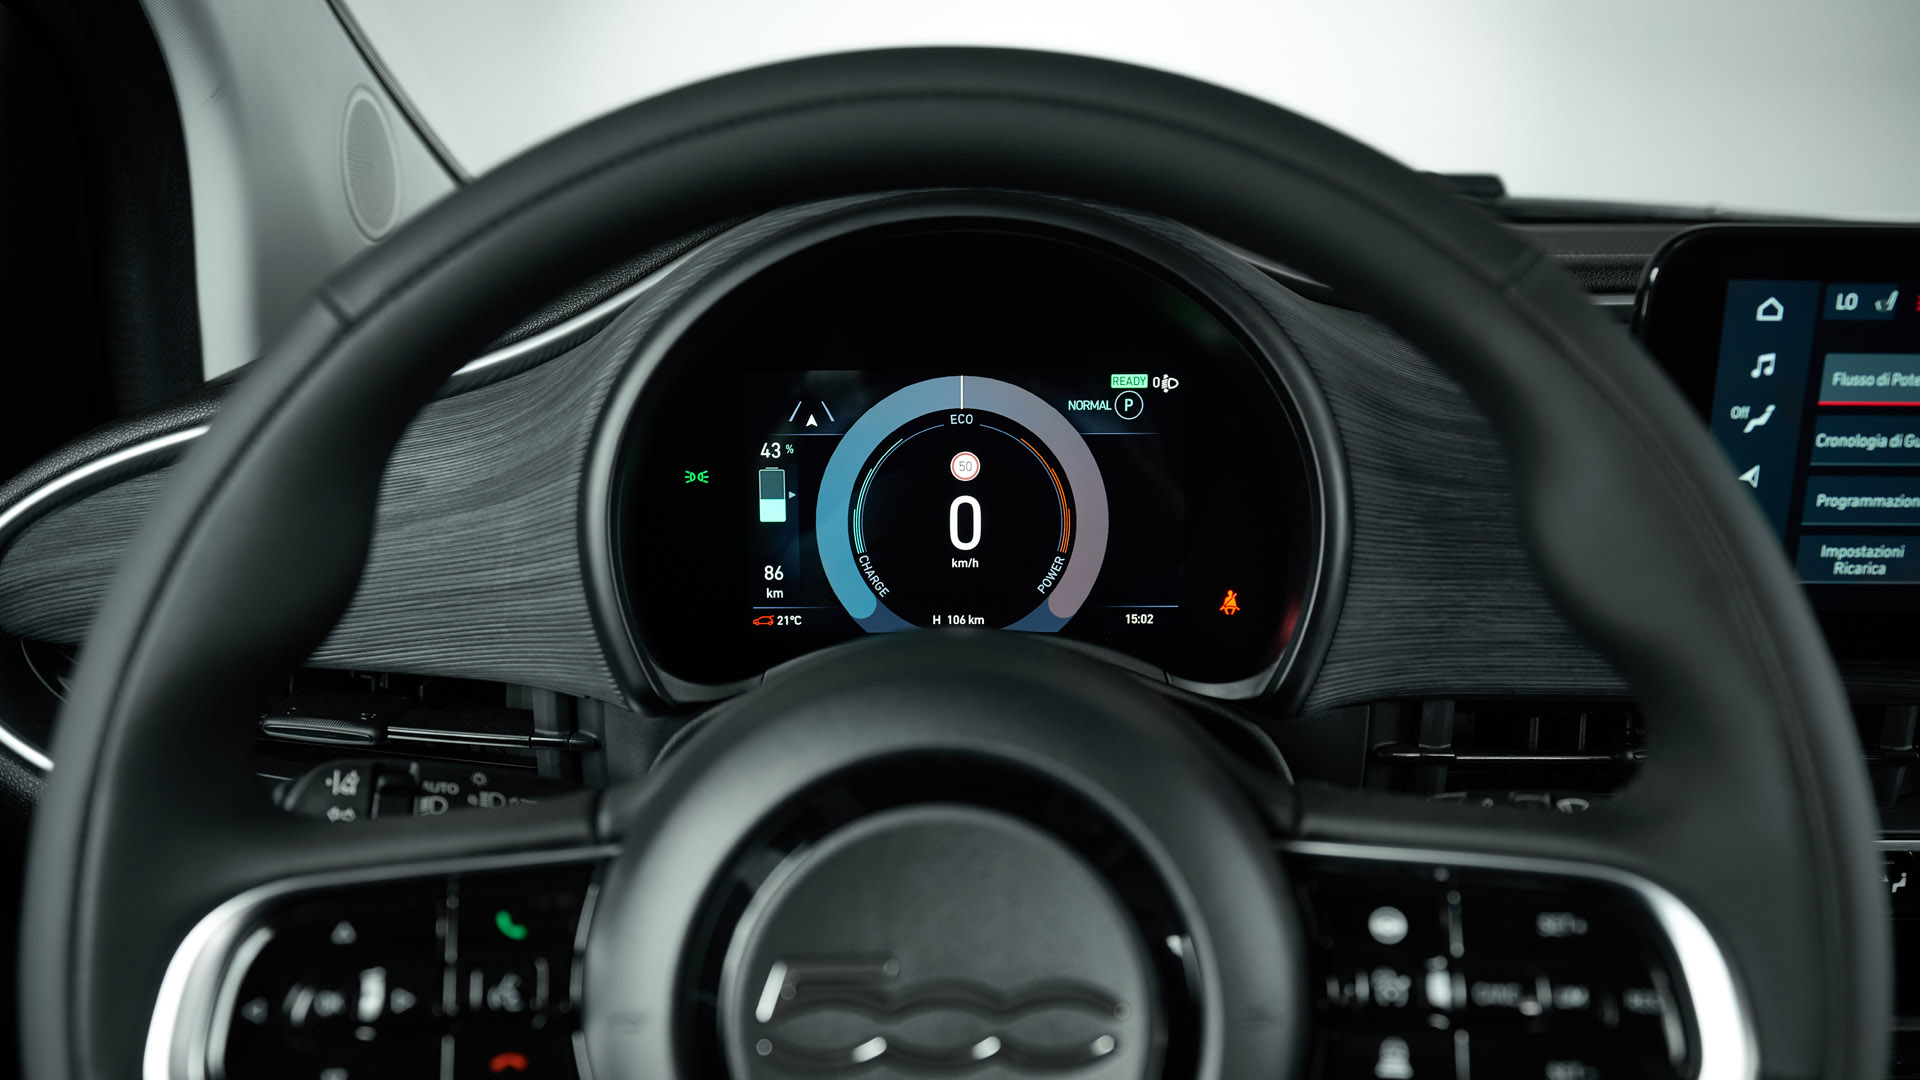 Fiat 500 Electric cluster